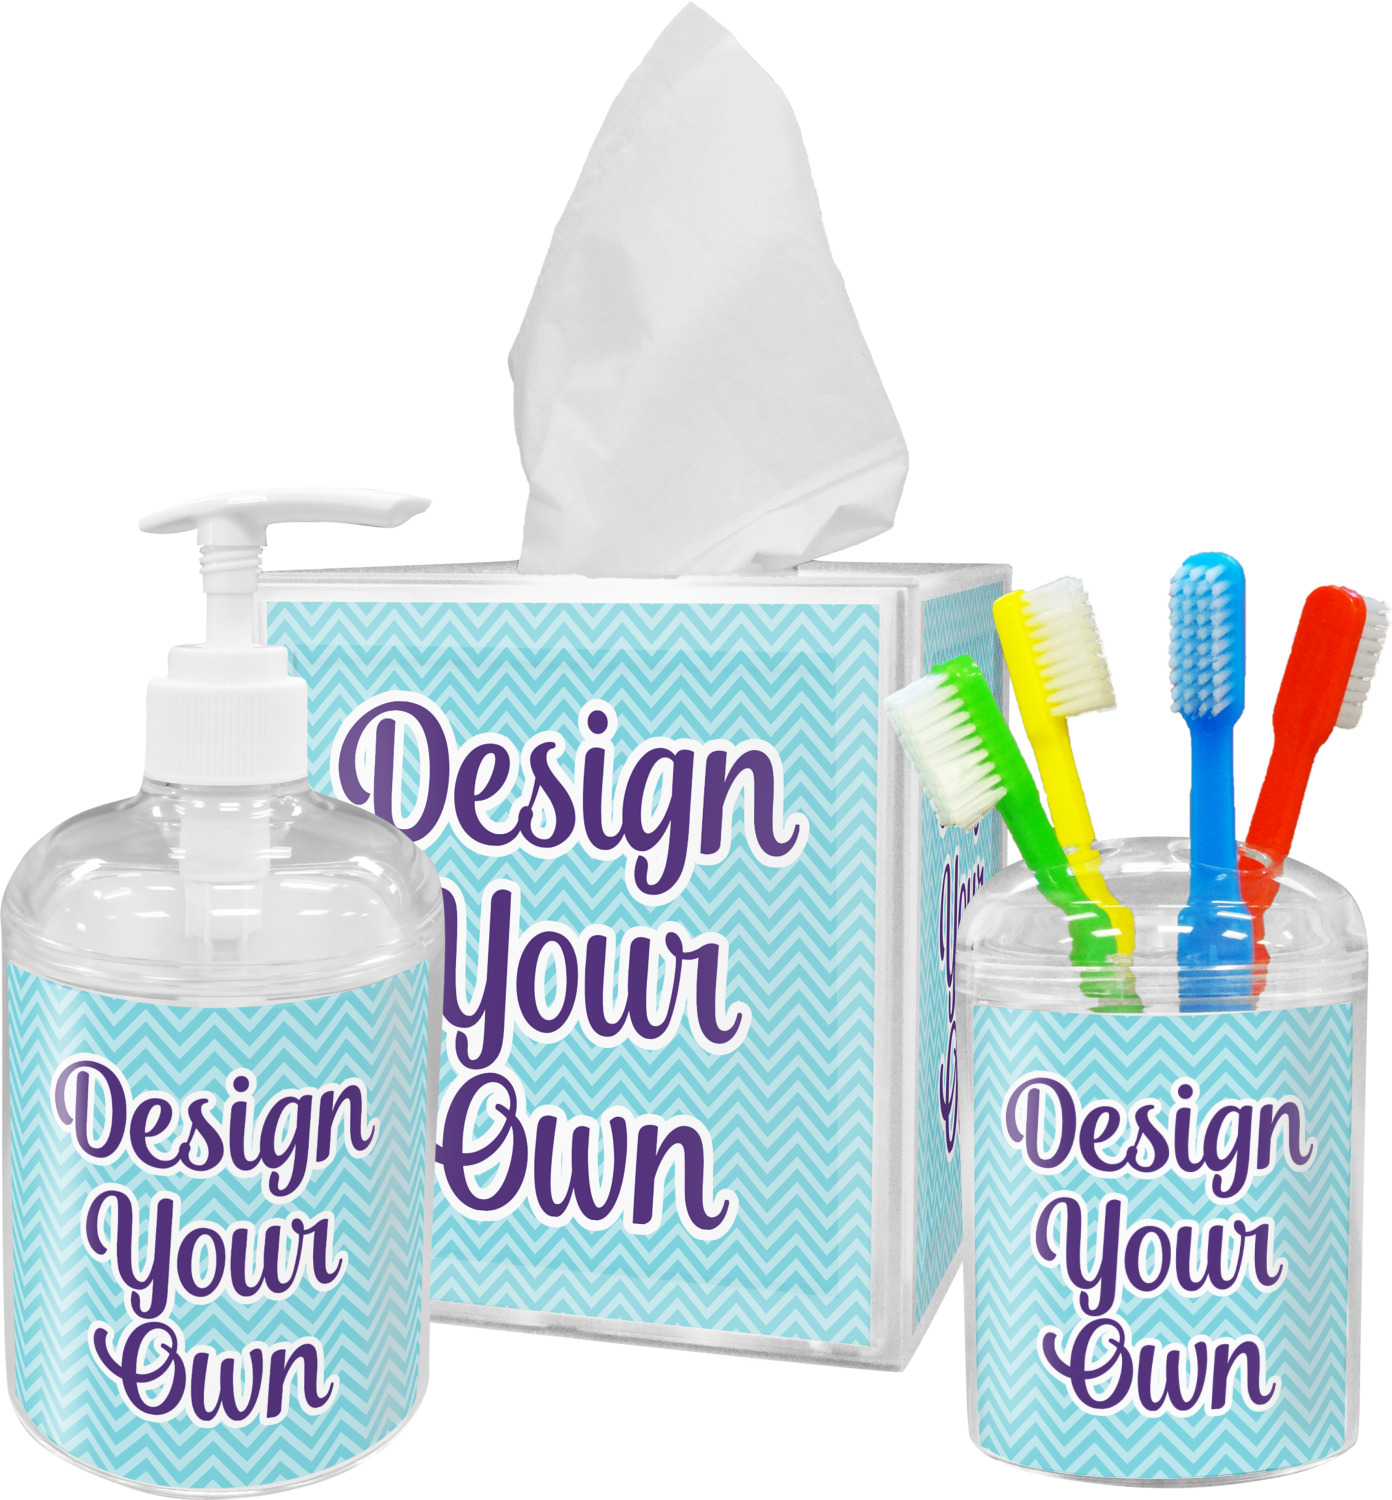 Design your own bathroom accessories set personalized you customize it Make your own bathroom design